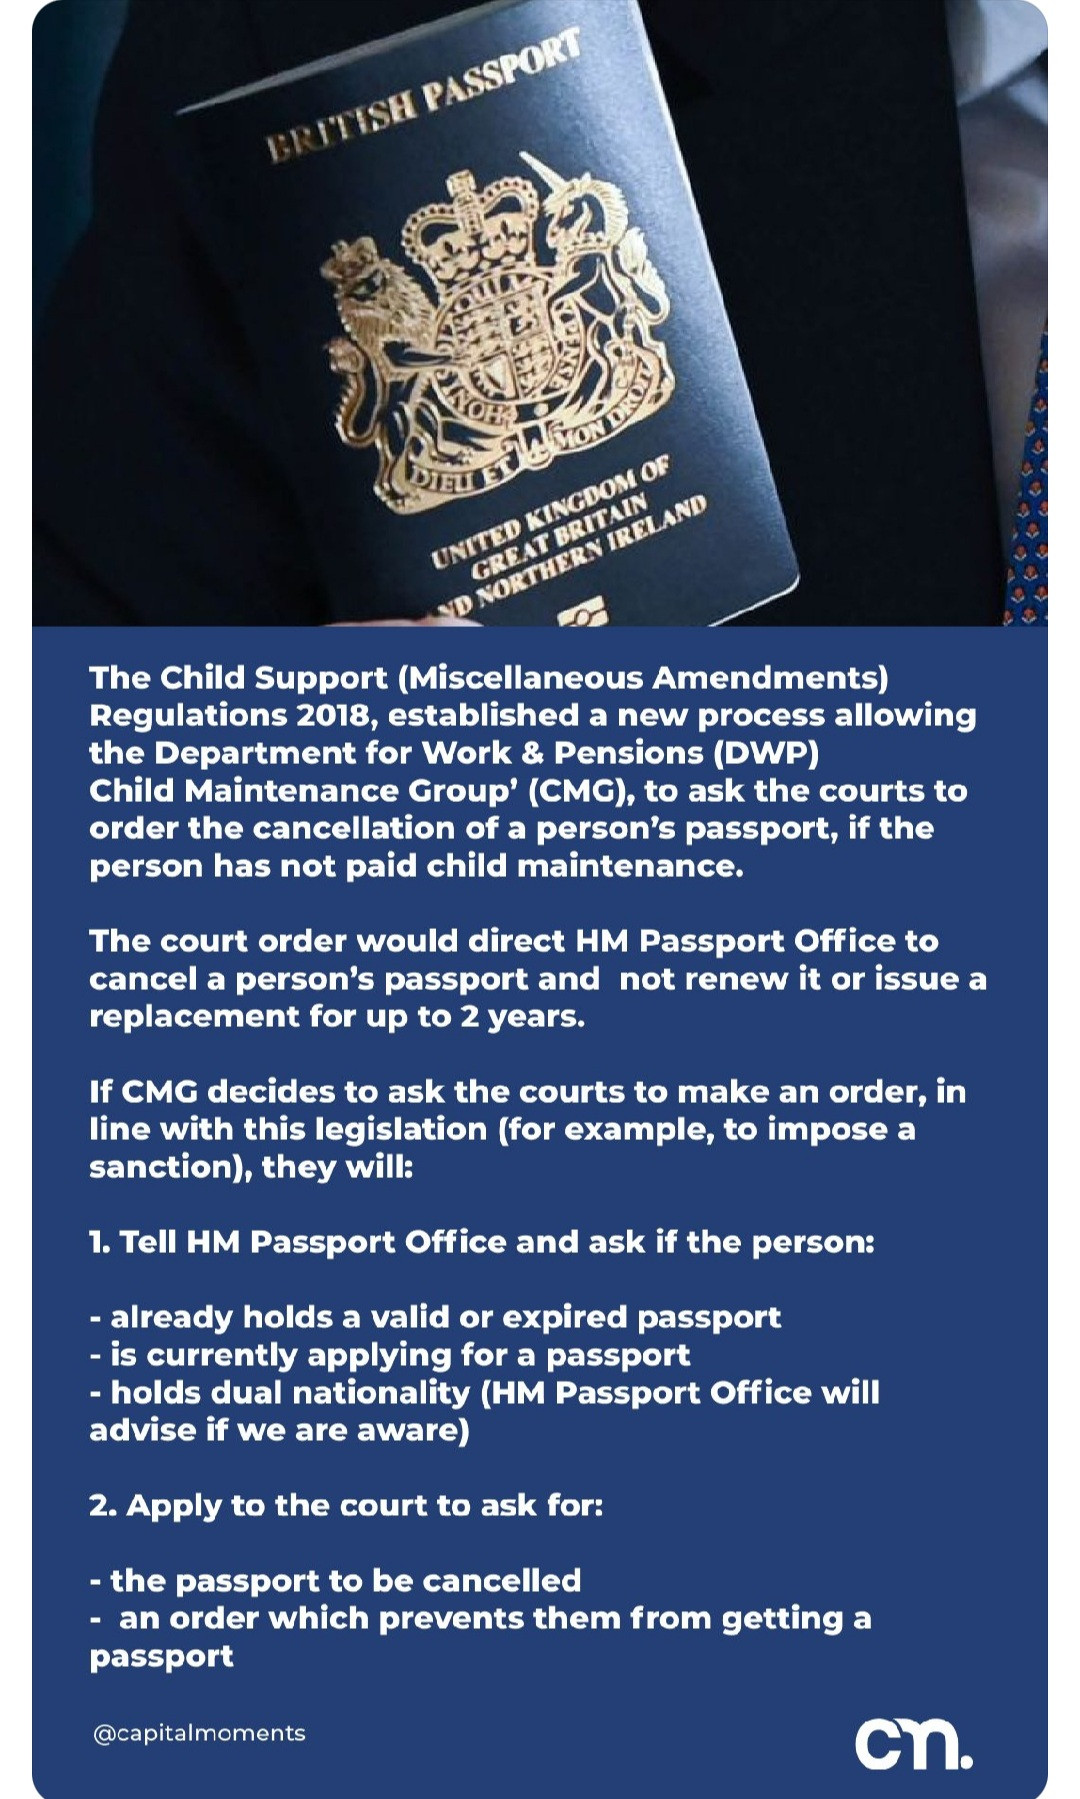 UK govt issues guidance that allows for cancellation of a person